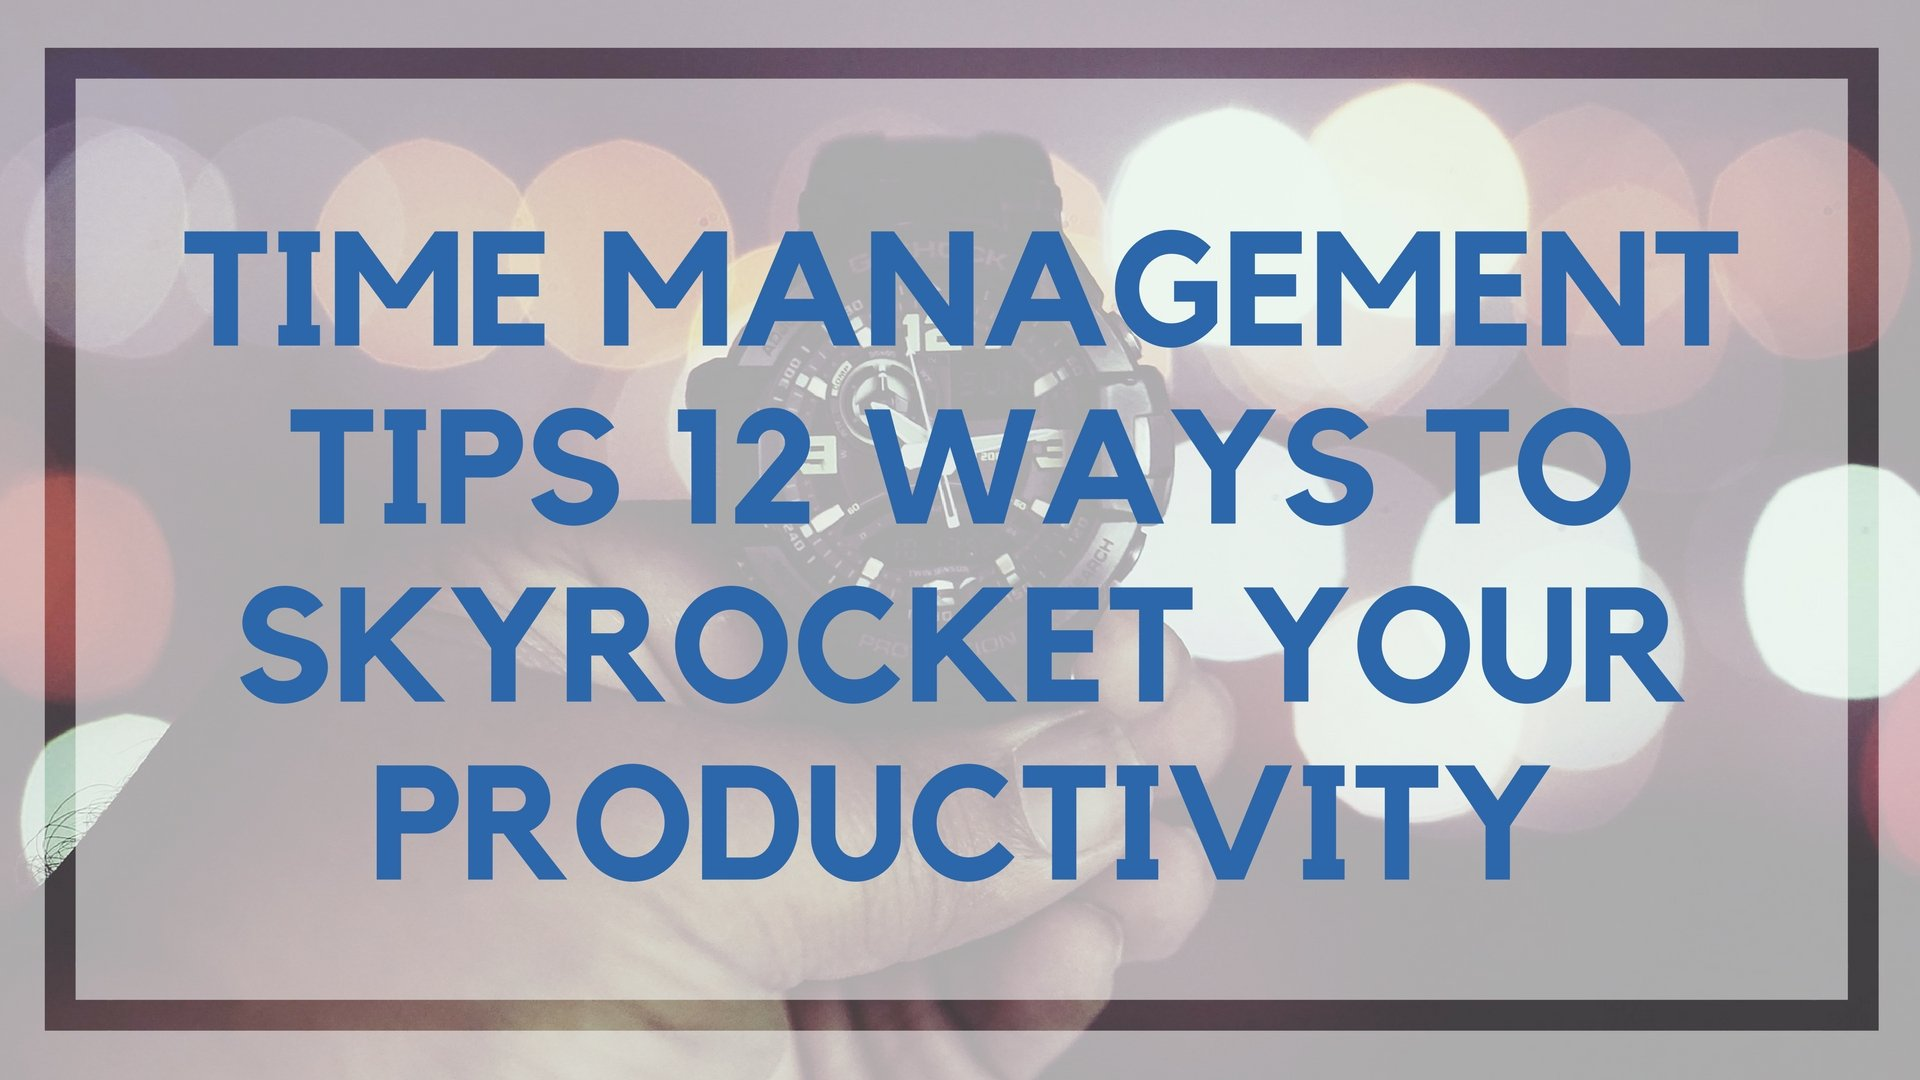 Time Management Tips: 12 Ways To Skyrocket Your Productivity